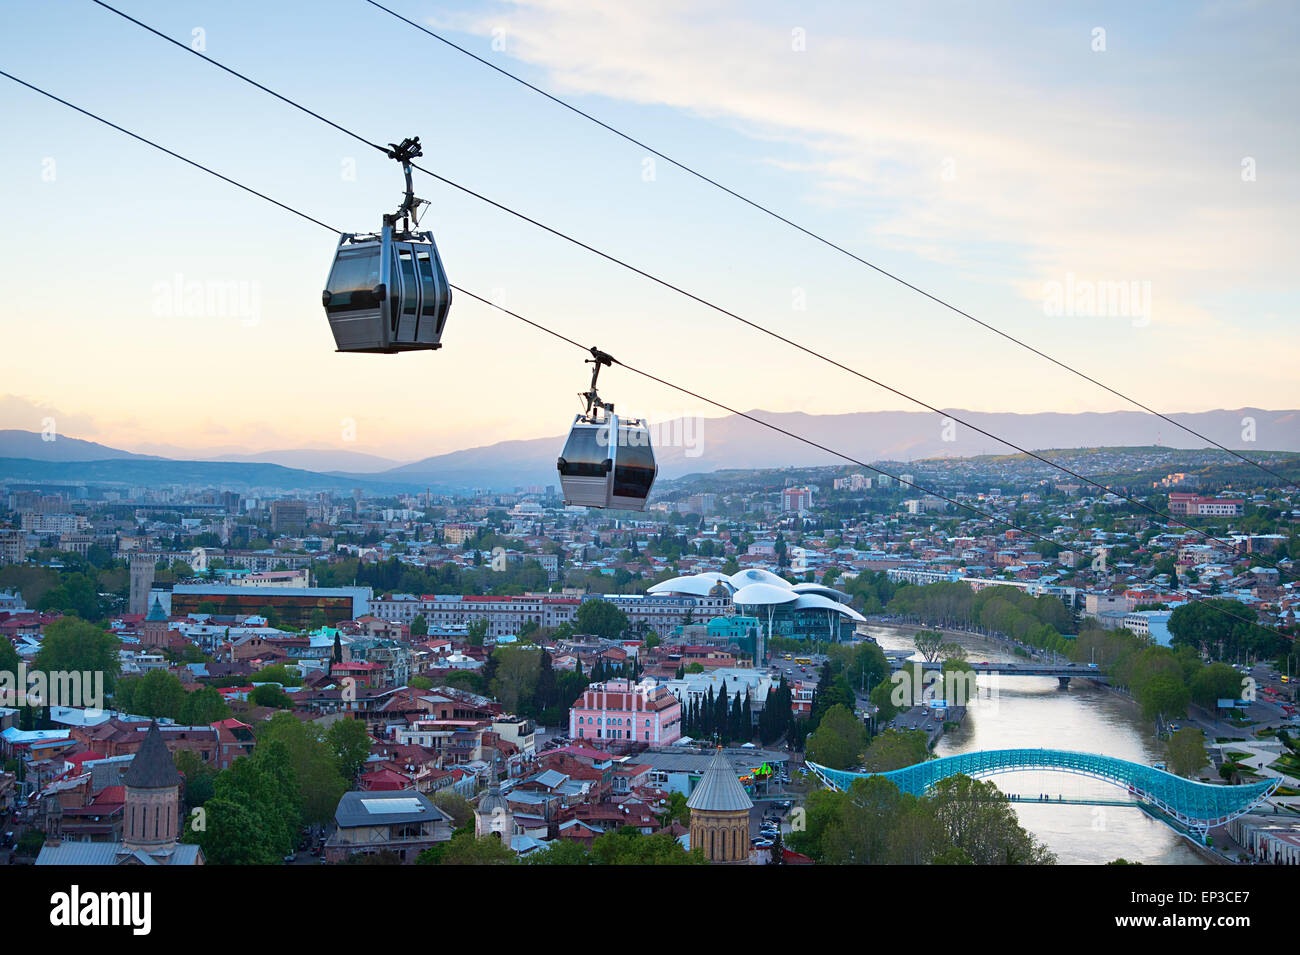 Cableway over the Tbilisi city at sunset. Georgia - Stock Image